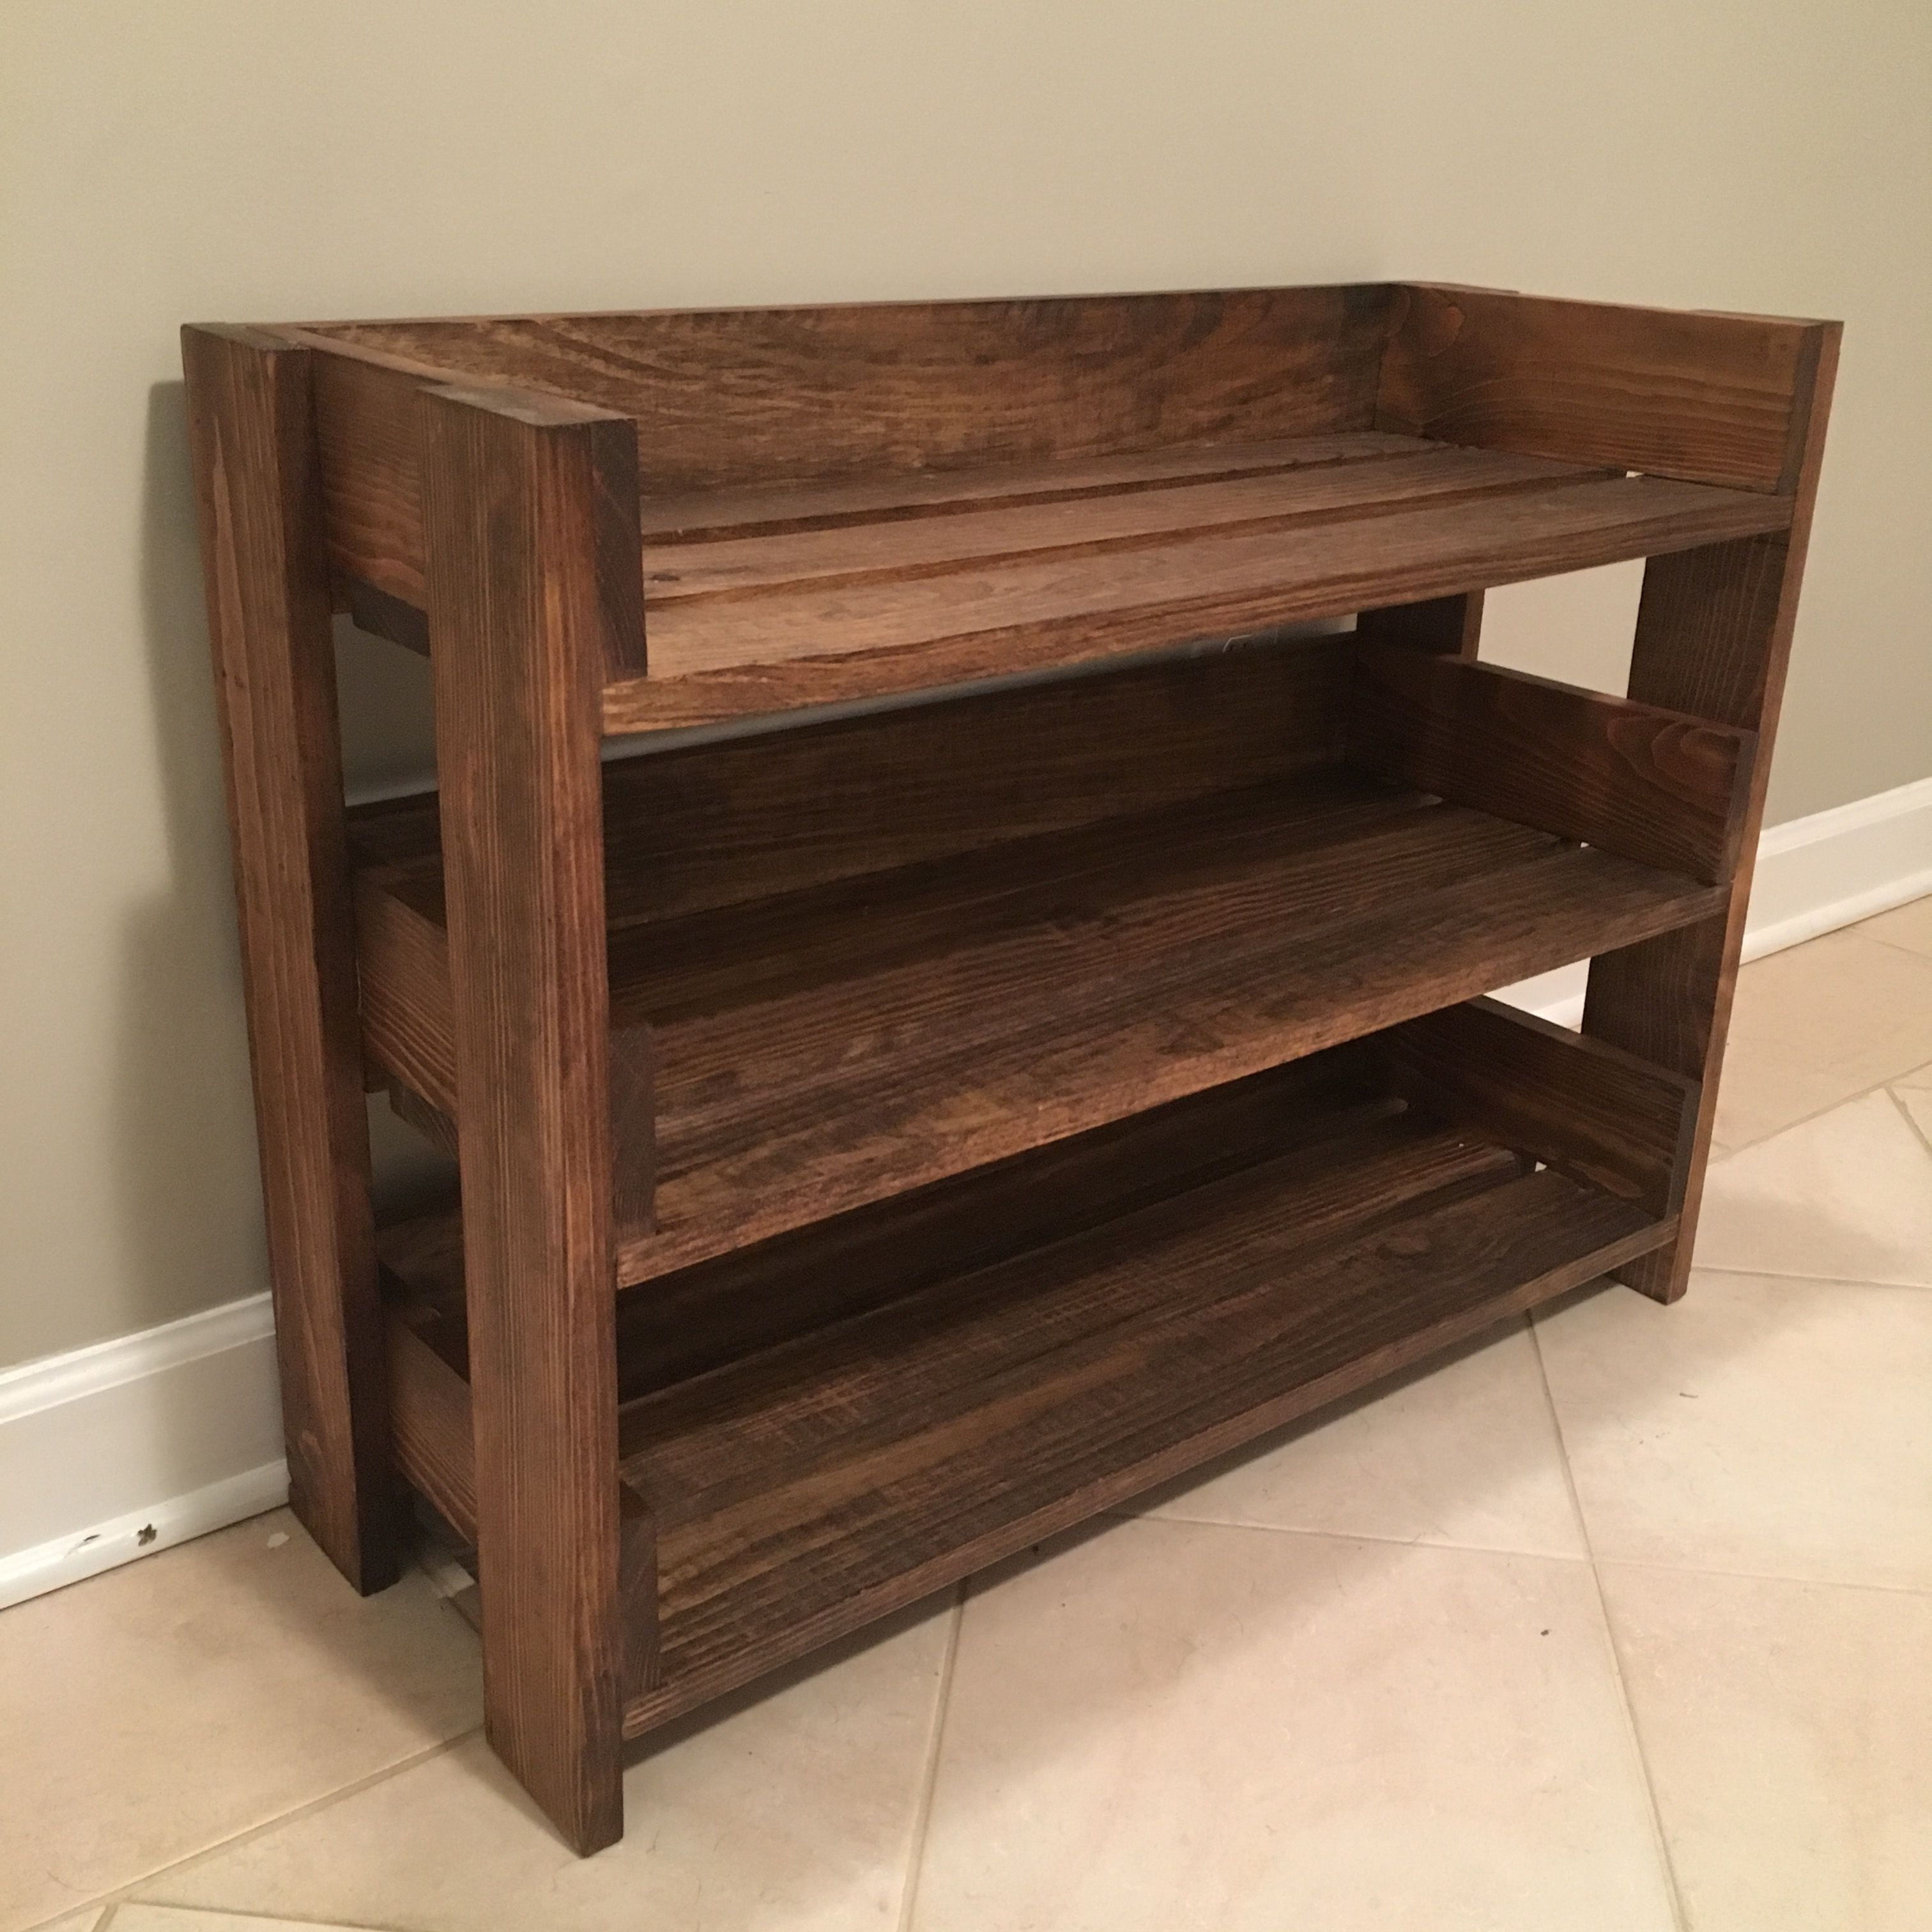 Simple Diy Shoe Rack Made From 1x4 S And Stained With Minwax